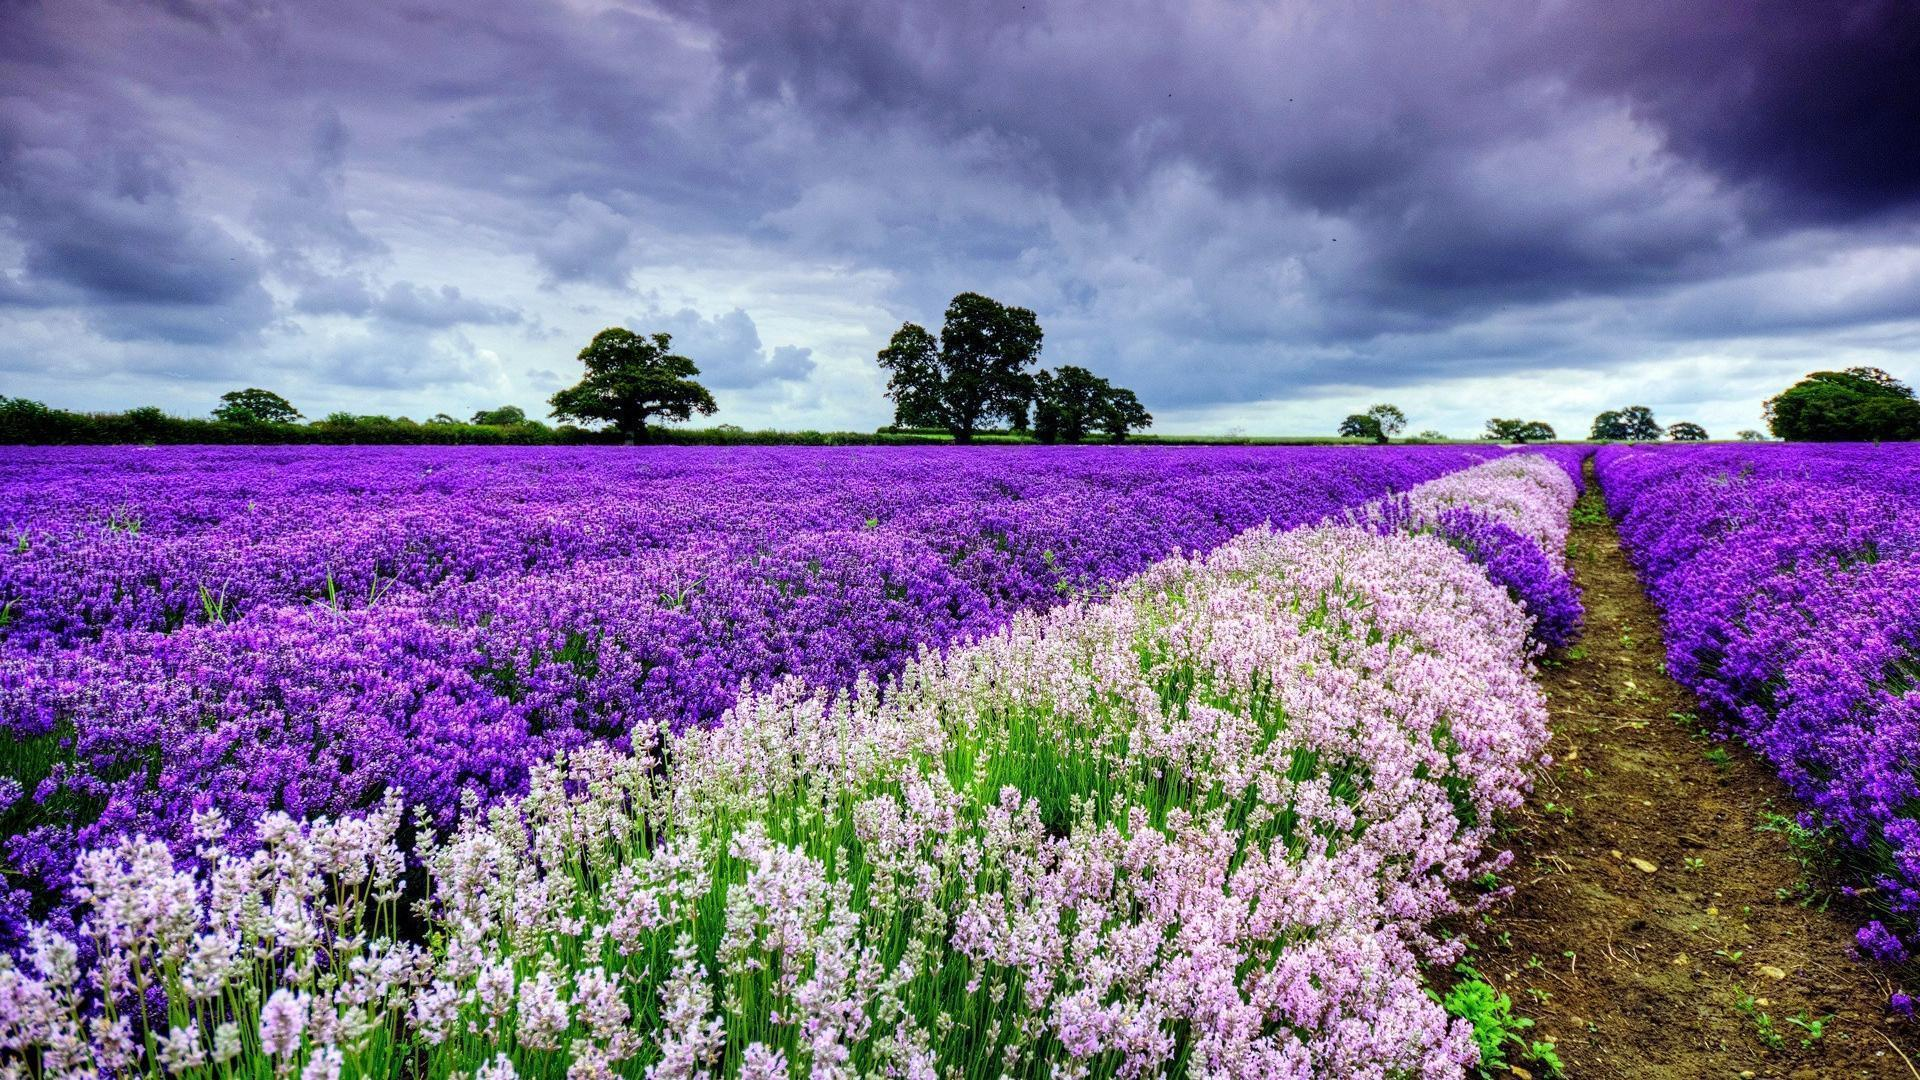 Spring Flowers Wallpapers Free - Wallpaper Cave